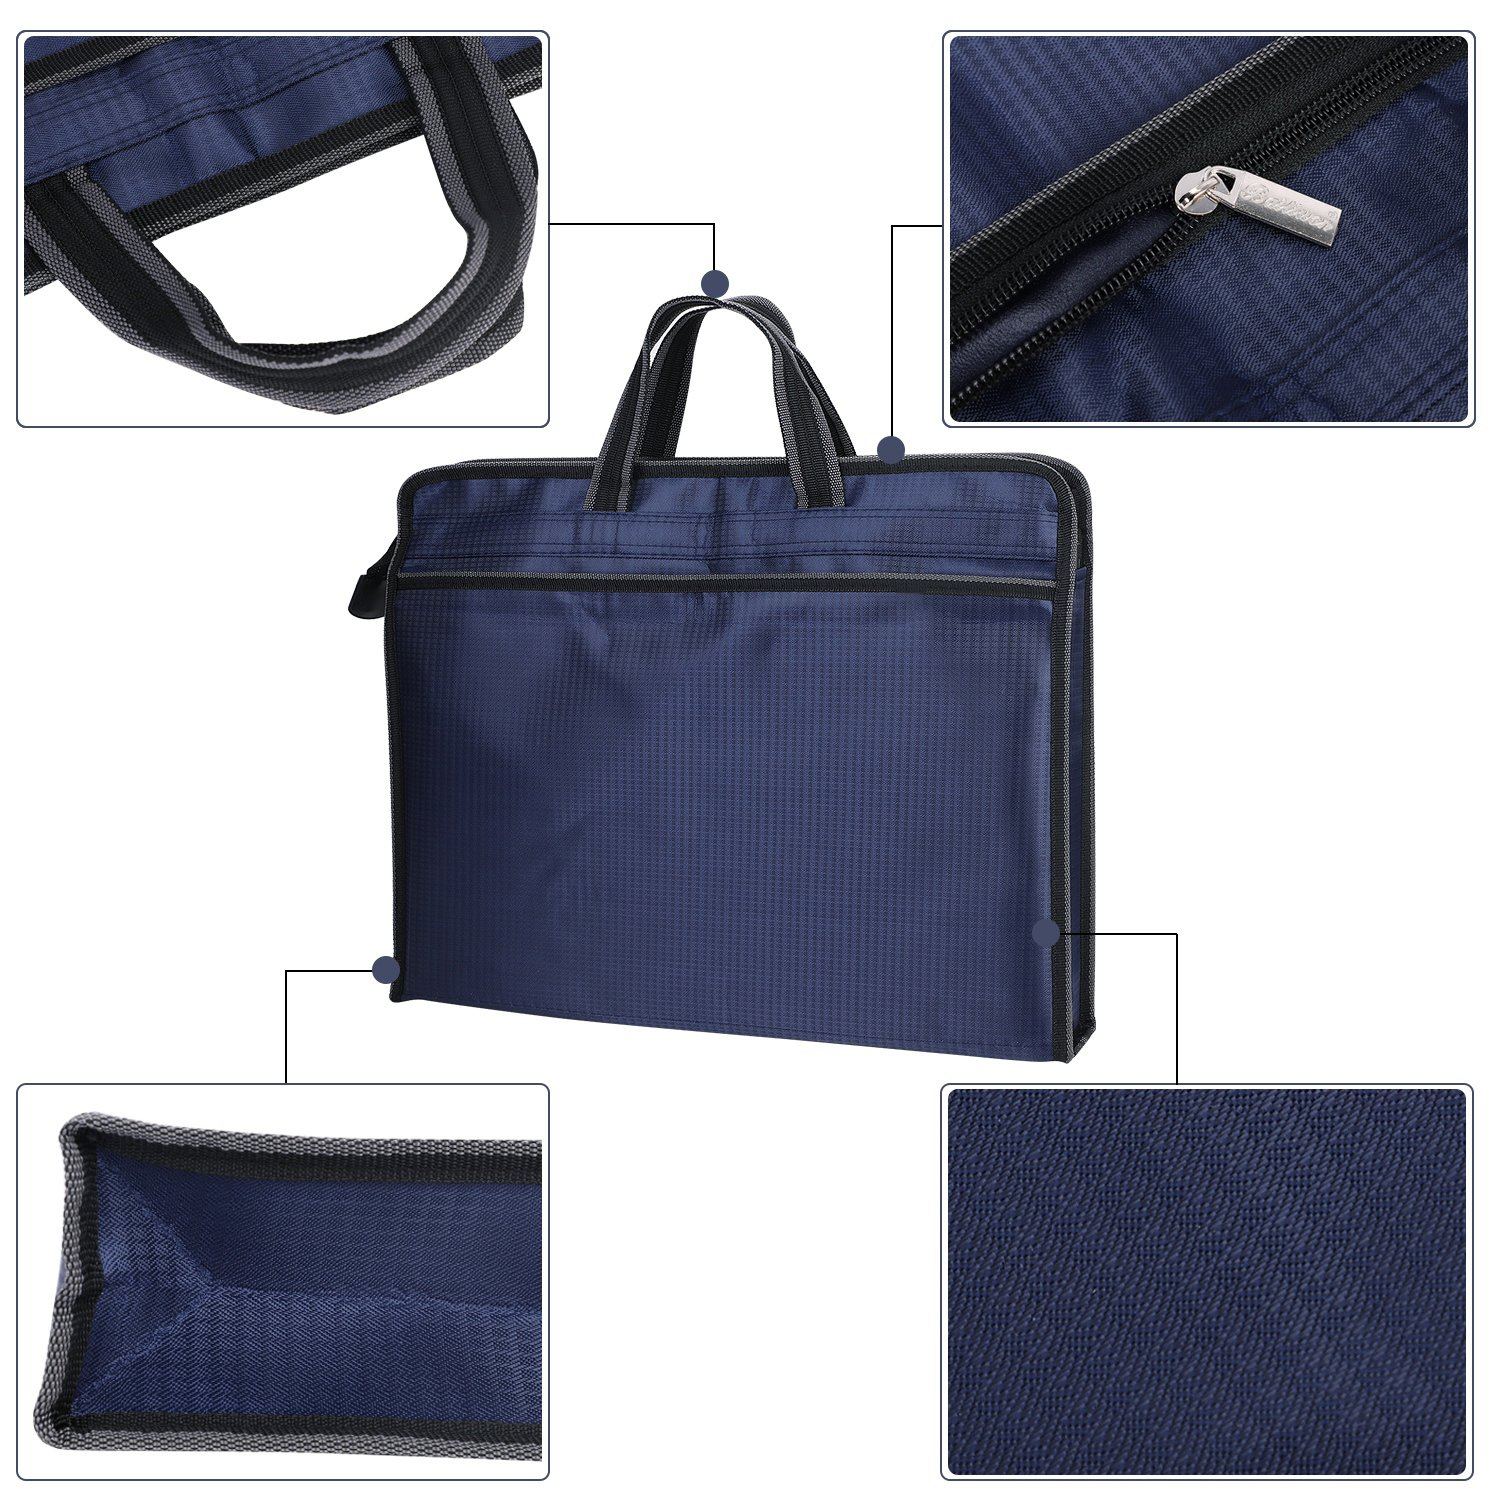 Travel Portable Briefcase, Multi-functional Zipper Business File Organizer Holder Document Bag Handbag Messenger Tote Bag with 2 Compartments for Unisex by ITODA (Image #4)